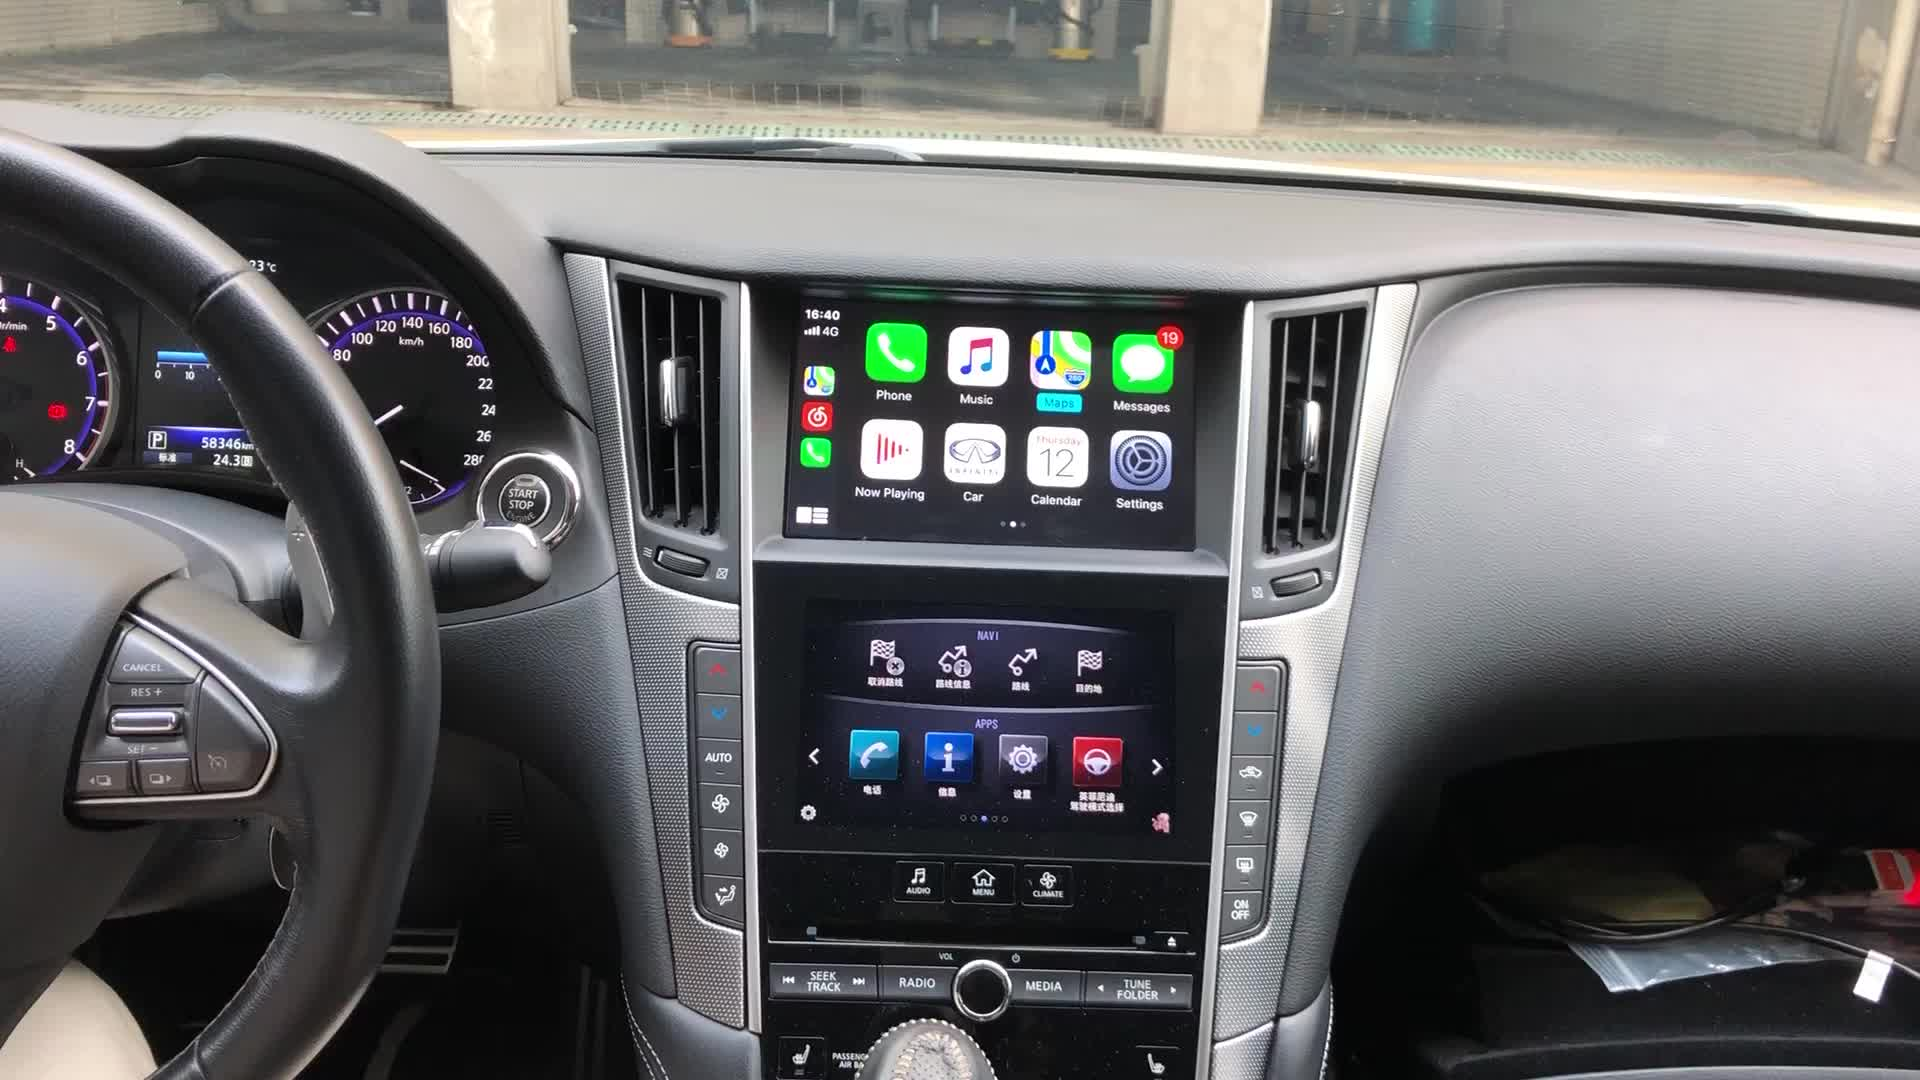 Lsailt Wireless Apple CarPlay &Android Auto Interface For 2014-2019 Lexus GX460 NX ES UX IS CT RX GS LS LX LC RC